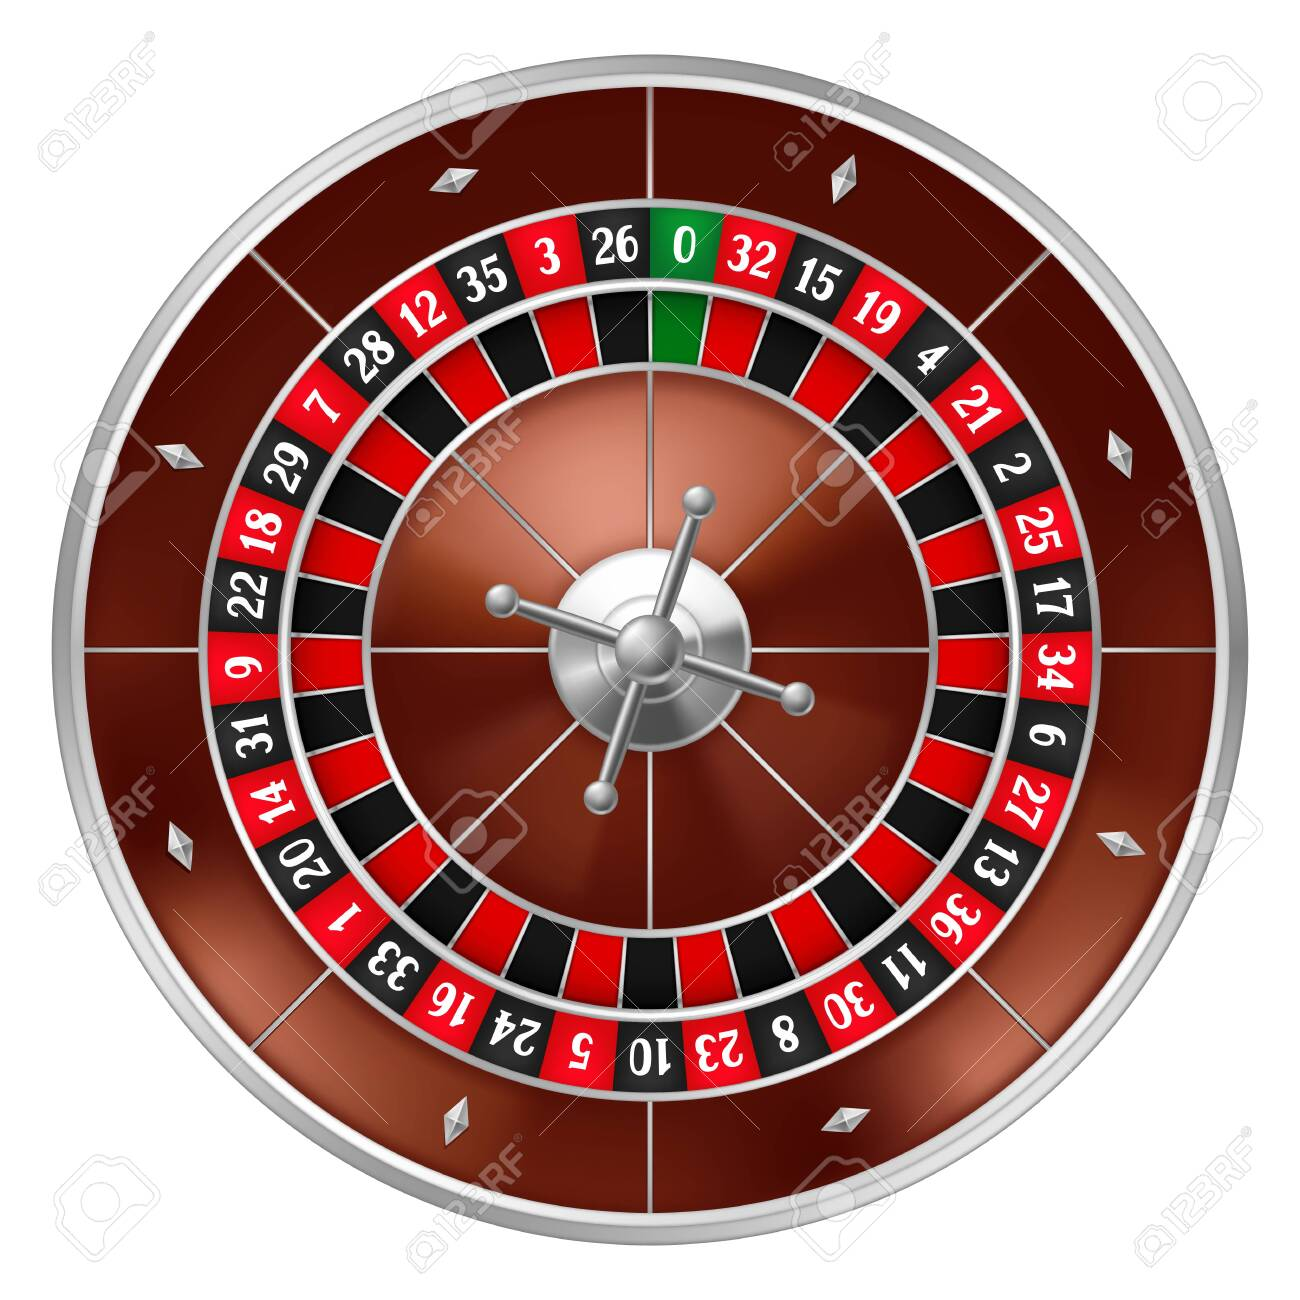 Realistic casino gambling roulette wheel. Equipment for the money games. - 145821923